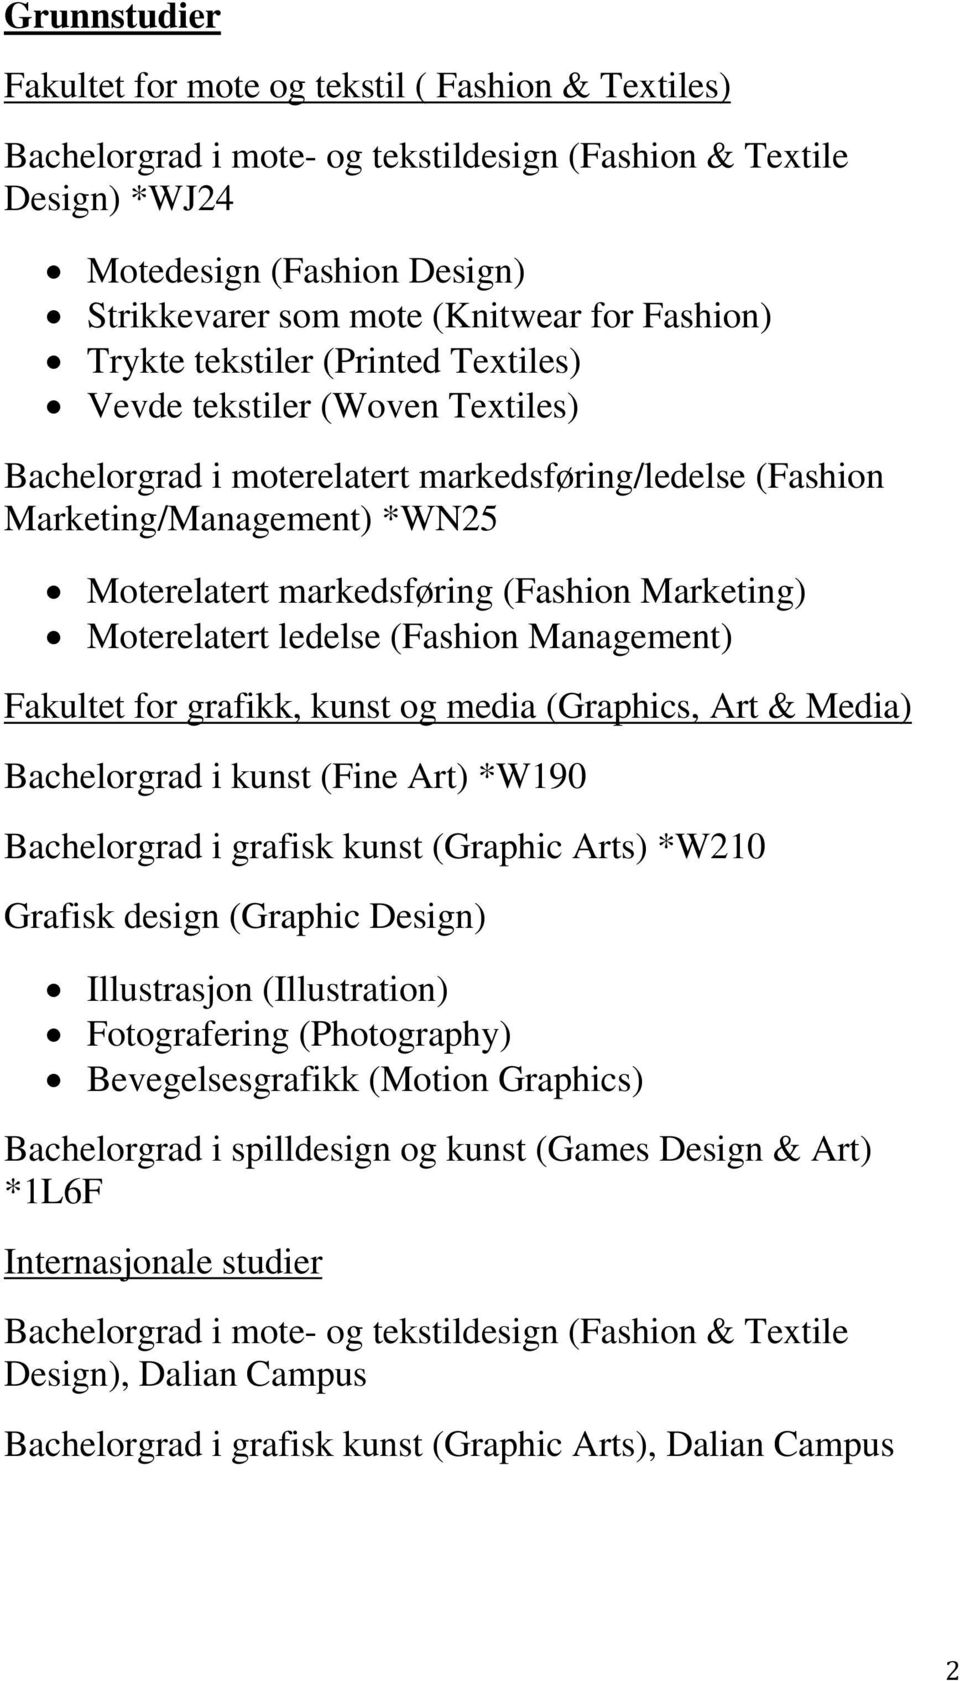 (Fashion Marketing) Moterelatert ledelse (Fashion Management) Fakultet for grafikk, kunst og media (Graphics, Art & Media) Bachelorgrad i kunst (Fine Art) *W190 Bachelorgrad i grafisk kunst (Graphic